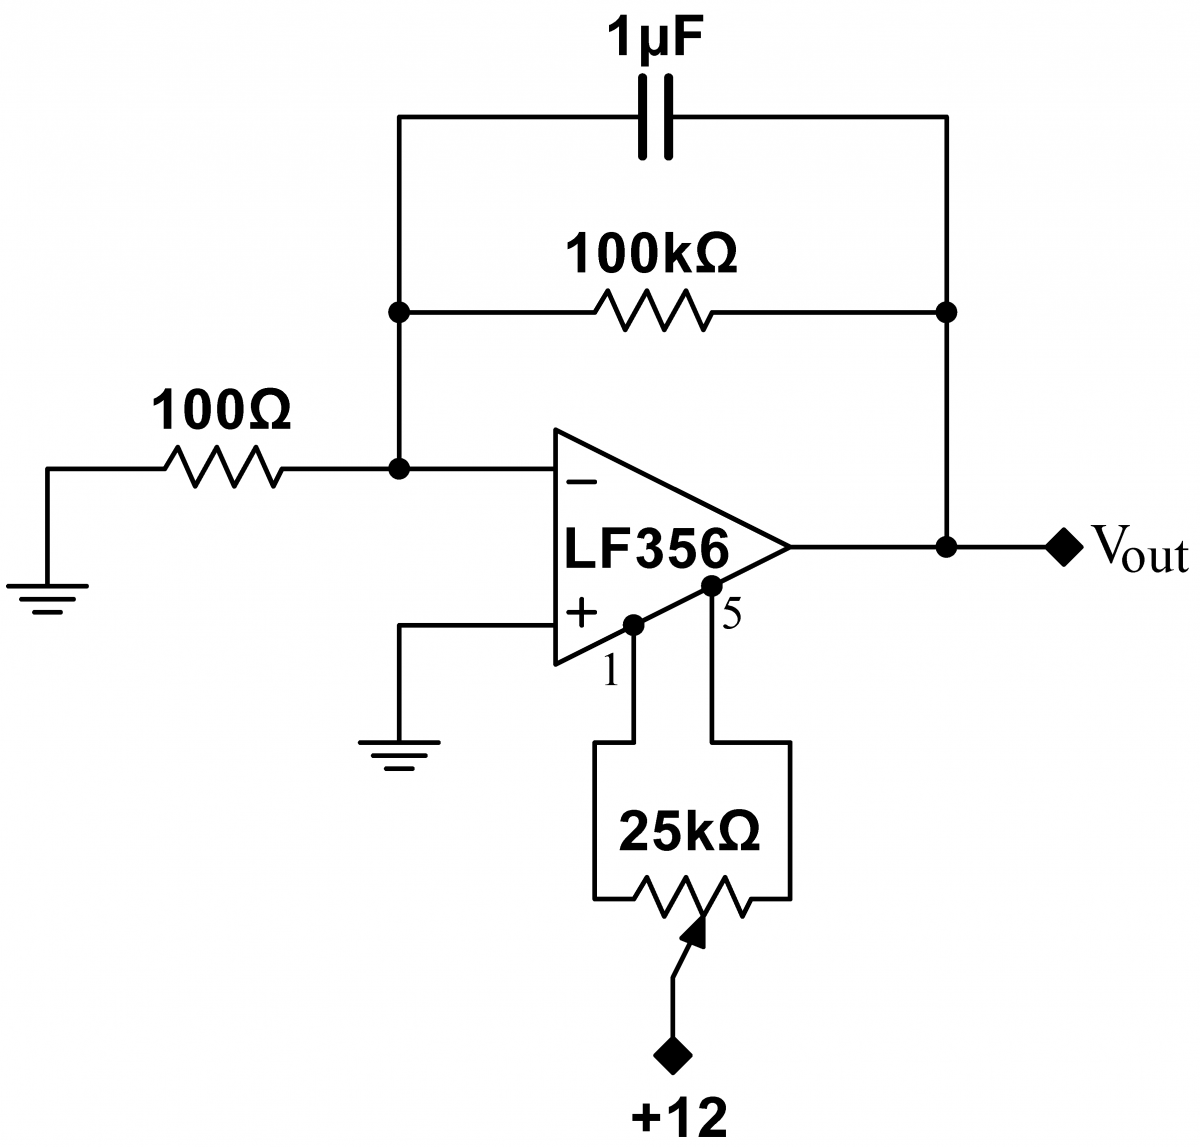 Standard Offset Nulling Circuit For Comparators Electronics Forum Op Amp Comparator Circuits Projects And Microcontrollers